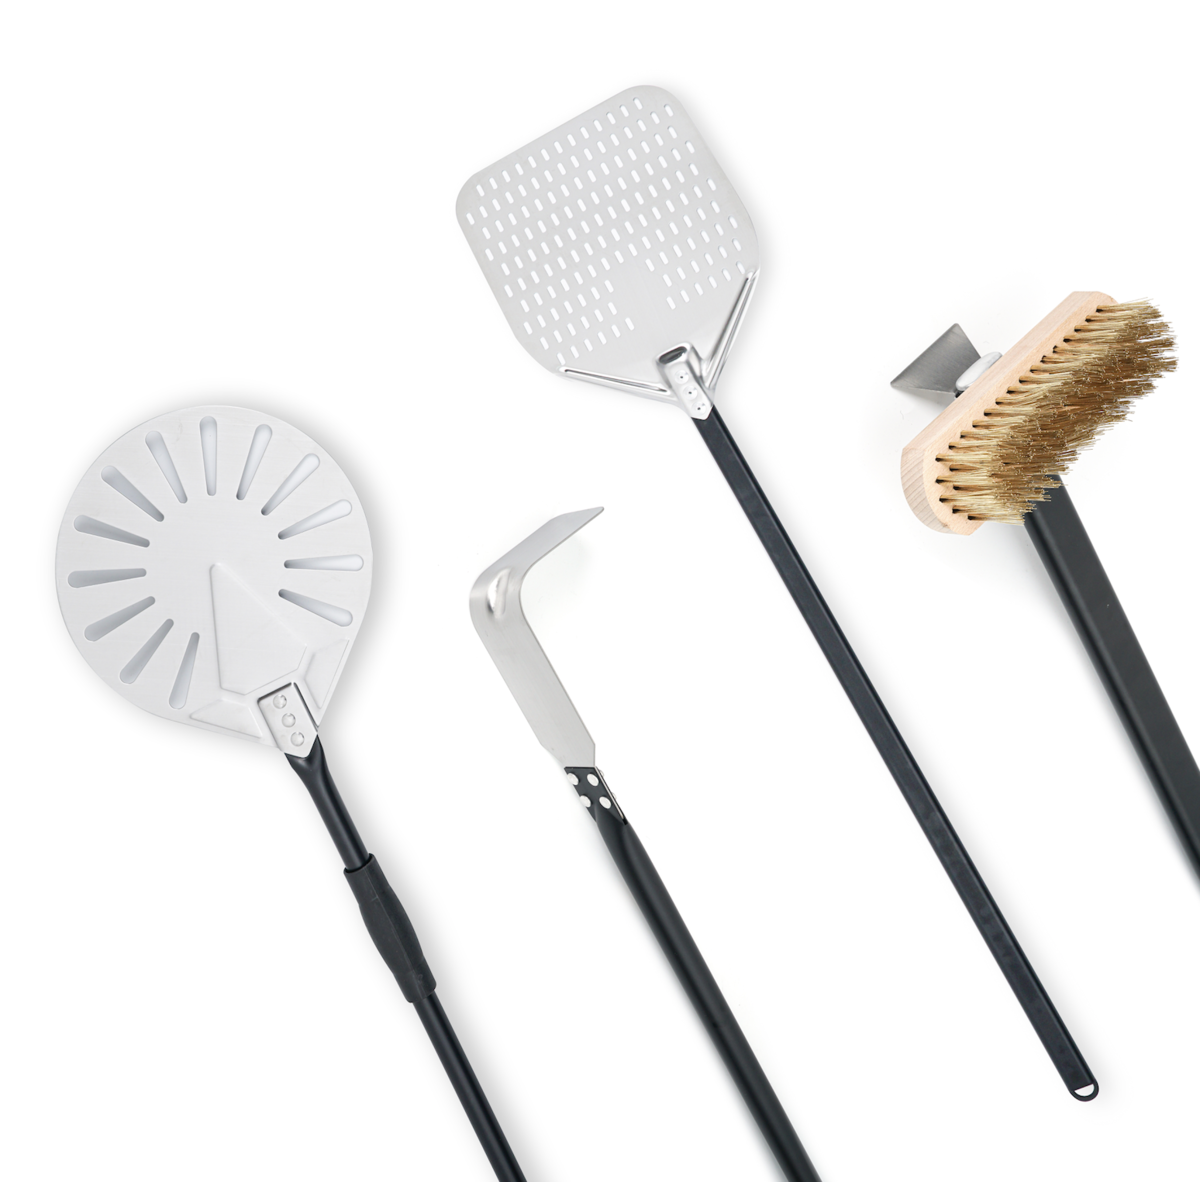 4 Piece professional aluminum handled wood fired pizza oven utensil Kit